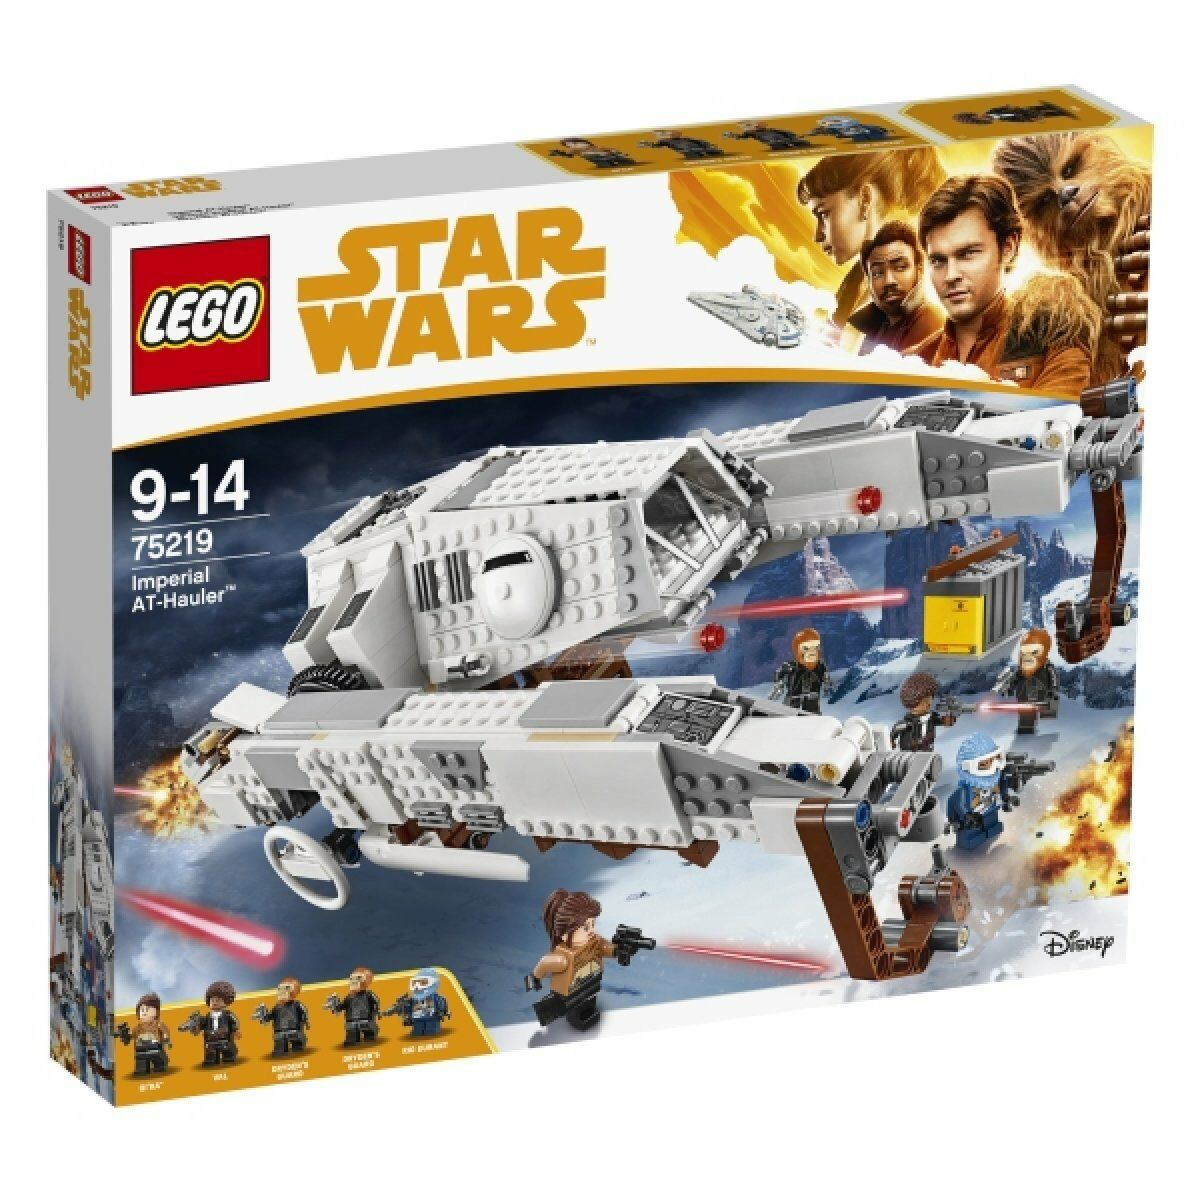 LEGO Star Wars Imperial AT-Hauler 75219 NEU OVP